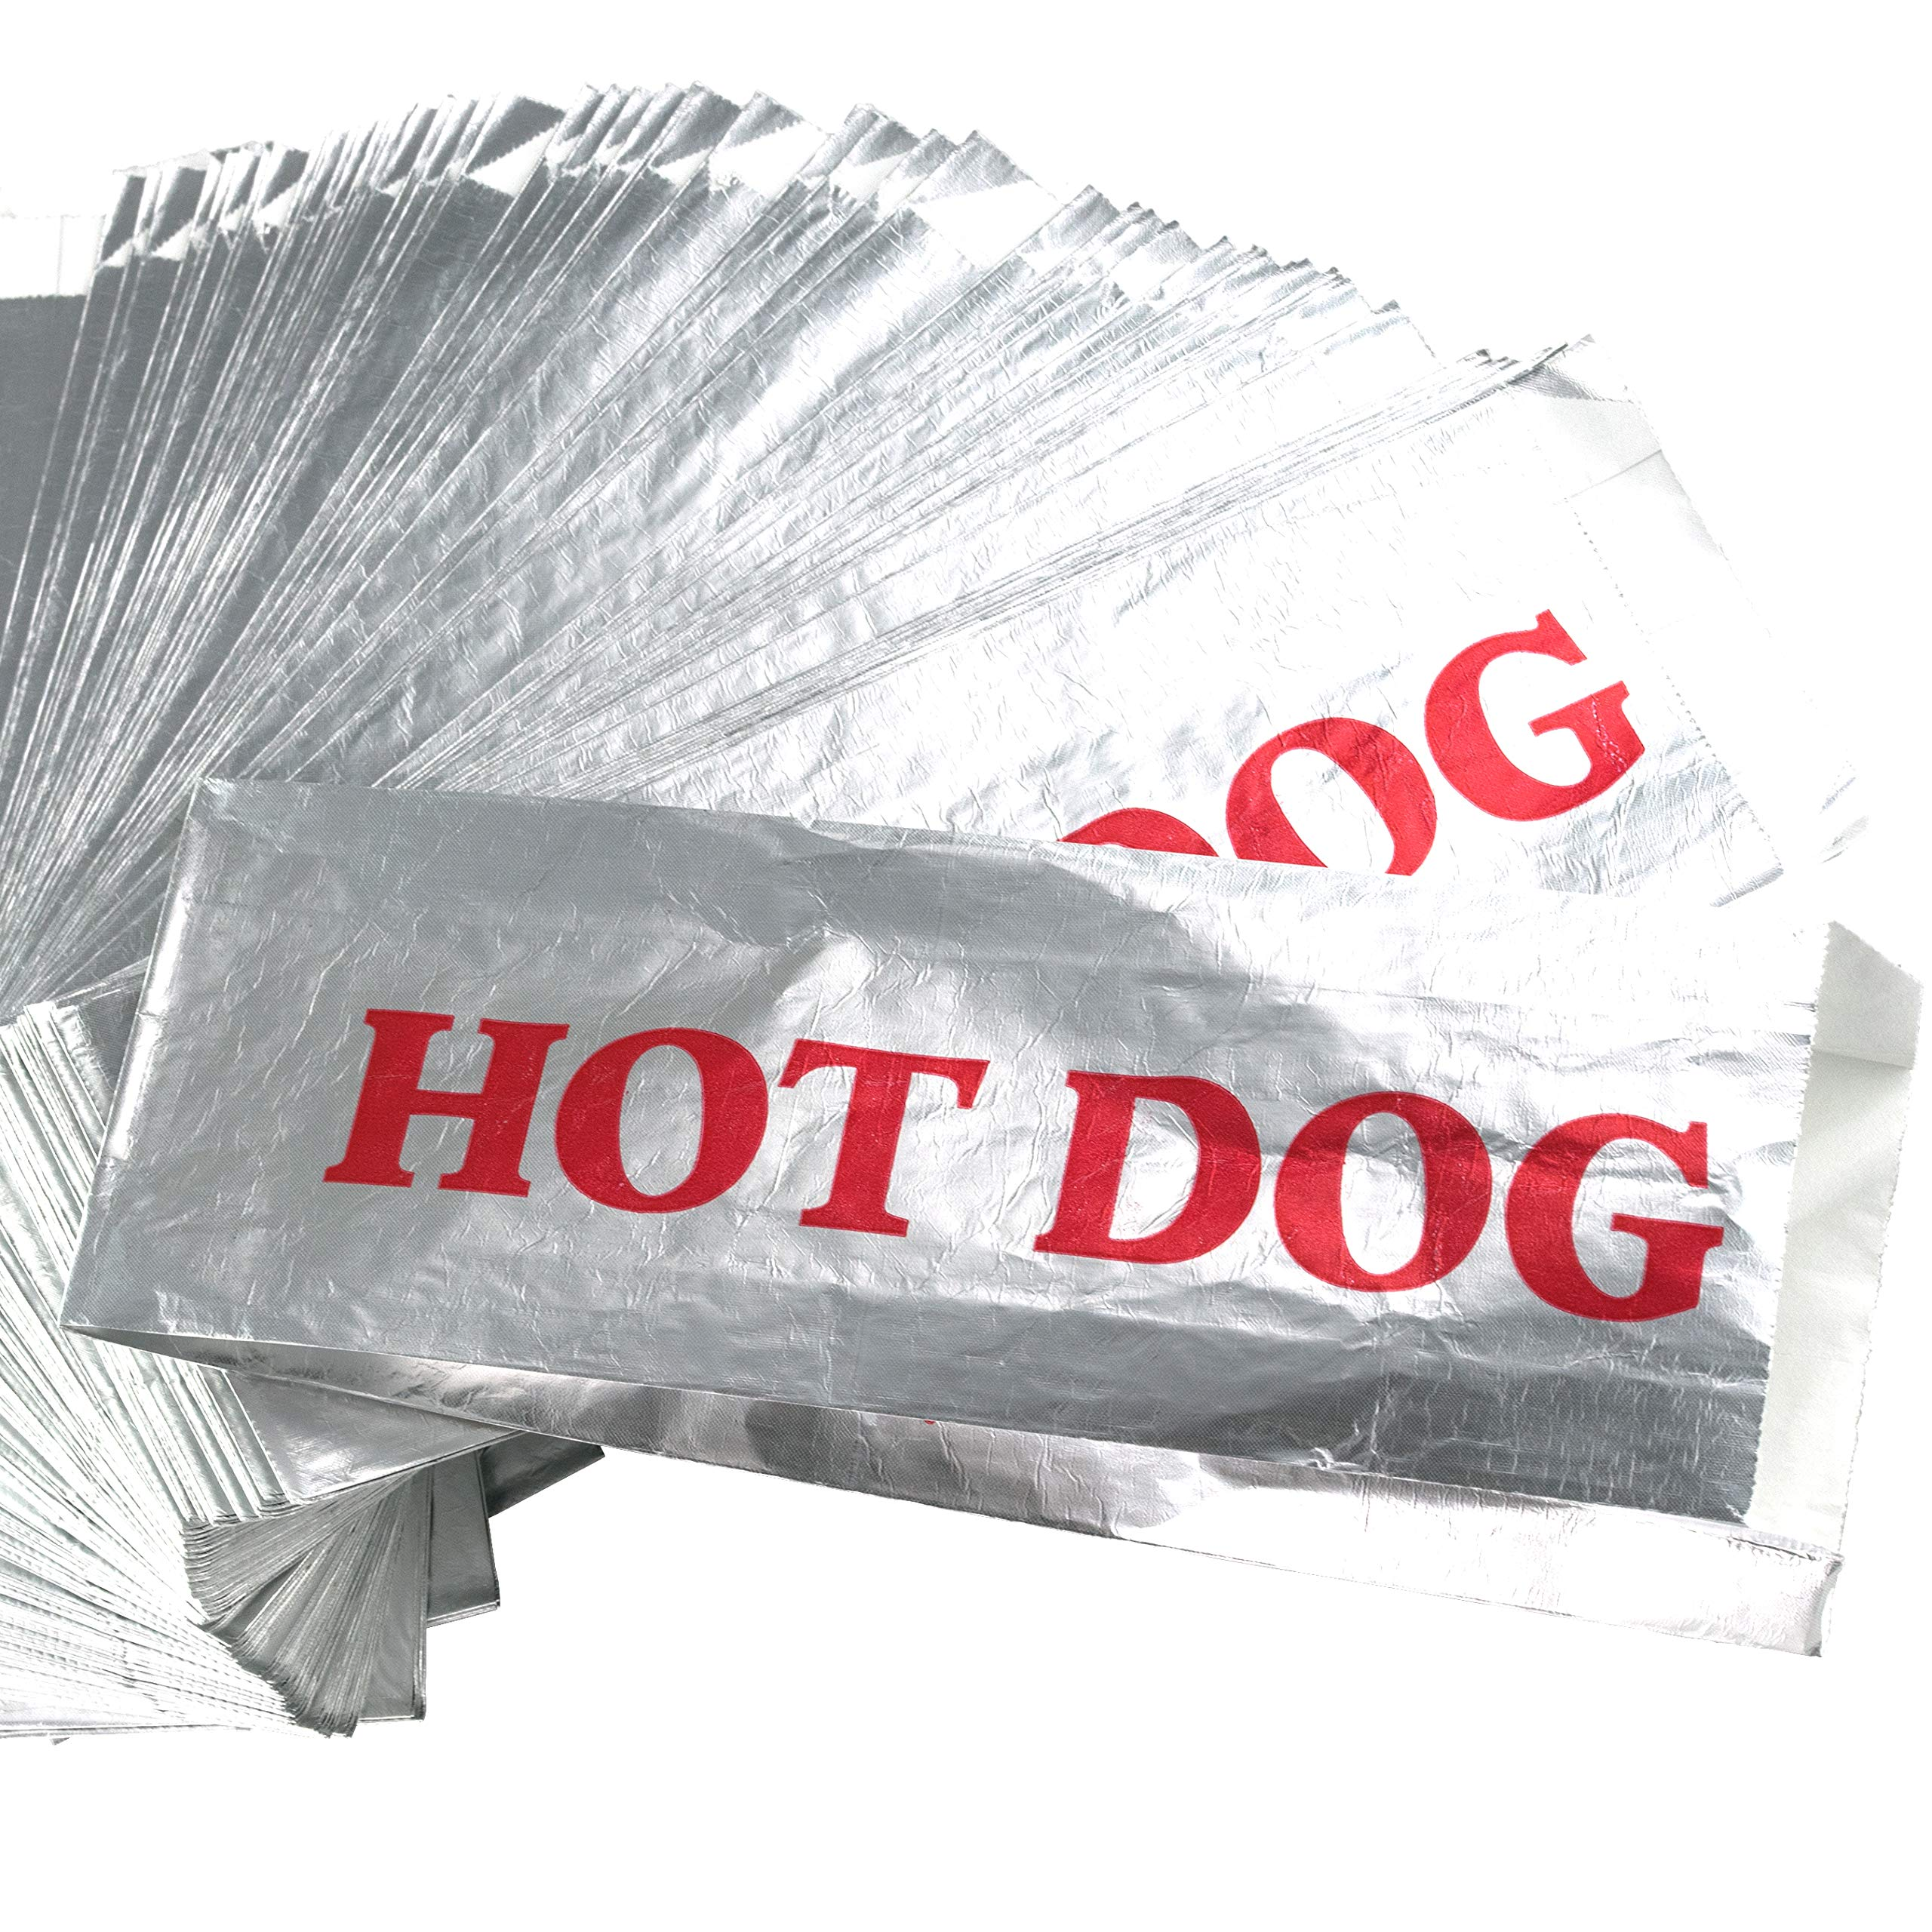 Warming Foil Hot Dog Wrapper Sleeves 200 Pack by Avant Grub. Turn a Party into a Carnival with Classic HotDog Bags that Keep Dogs Warm and Fundraiser or Concession Stand Guests Mess-Free! by Avant Grub